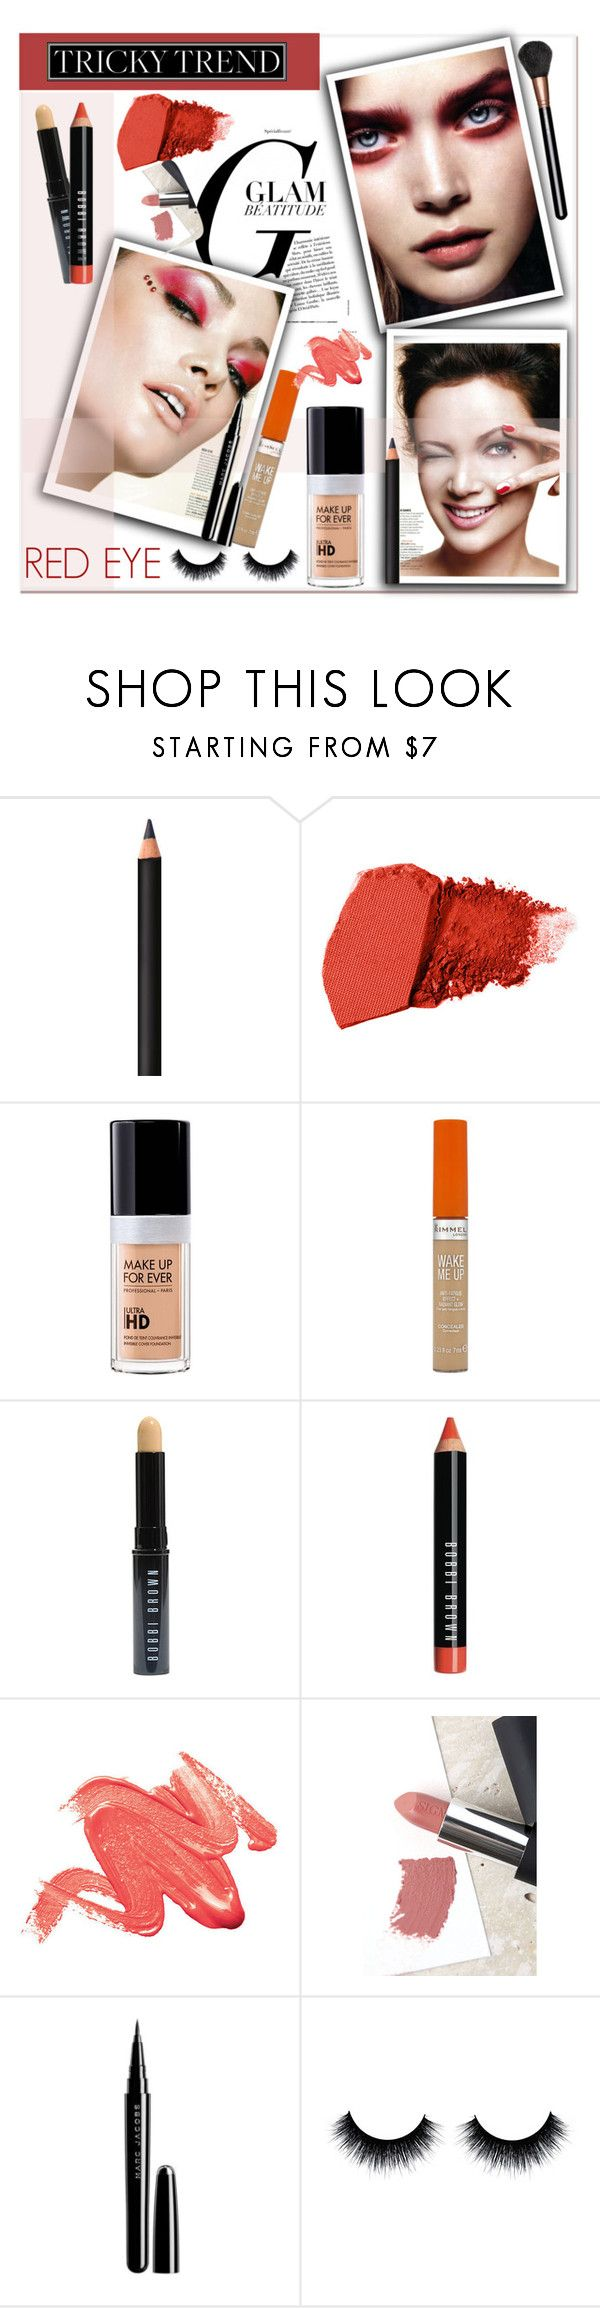 """""""TrickyTrend: Red Eye Makeup"""" by sweta-gupta ❤ liked on Polyvore featuring beauty, INIKA, Jane Iredale, MAKE UP FOR EVER, Rimmel, Bobbi Brown Cosmetics, Sigma, Marc Jacobs, MAC Cosmetics and eyemakeup"""